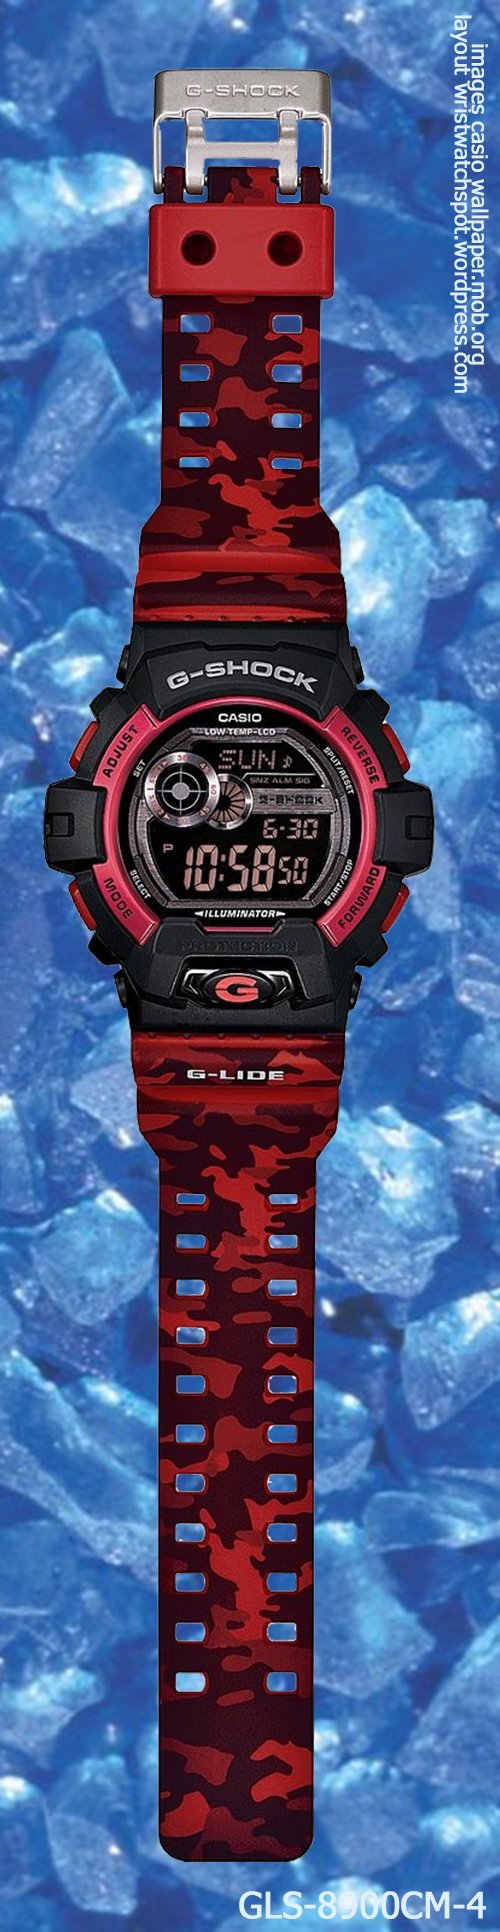 g-shock_gls-8900cm-4_front g-lide 2014 red watch gray digital sports